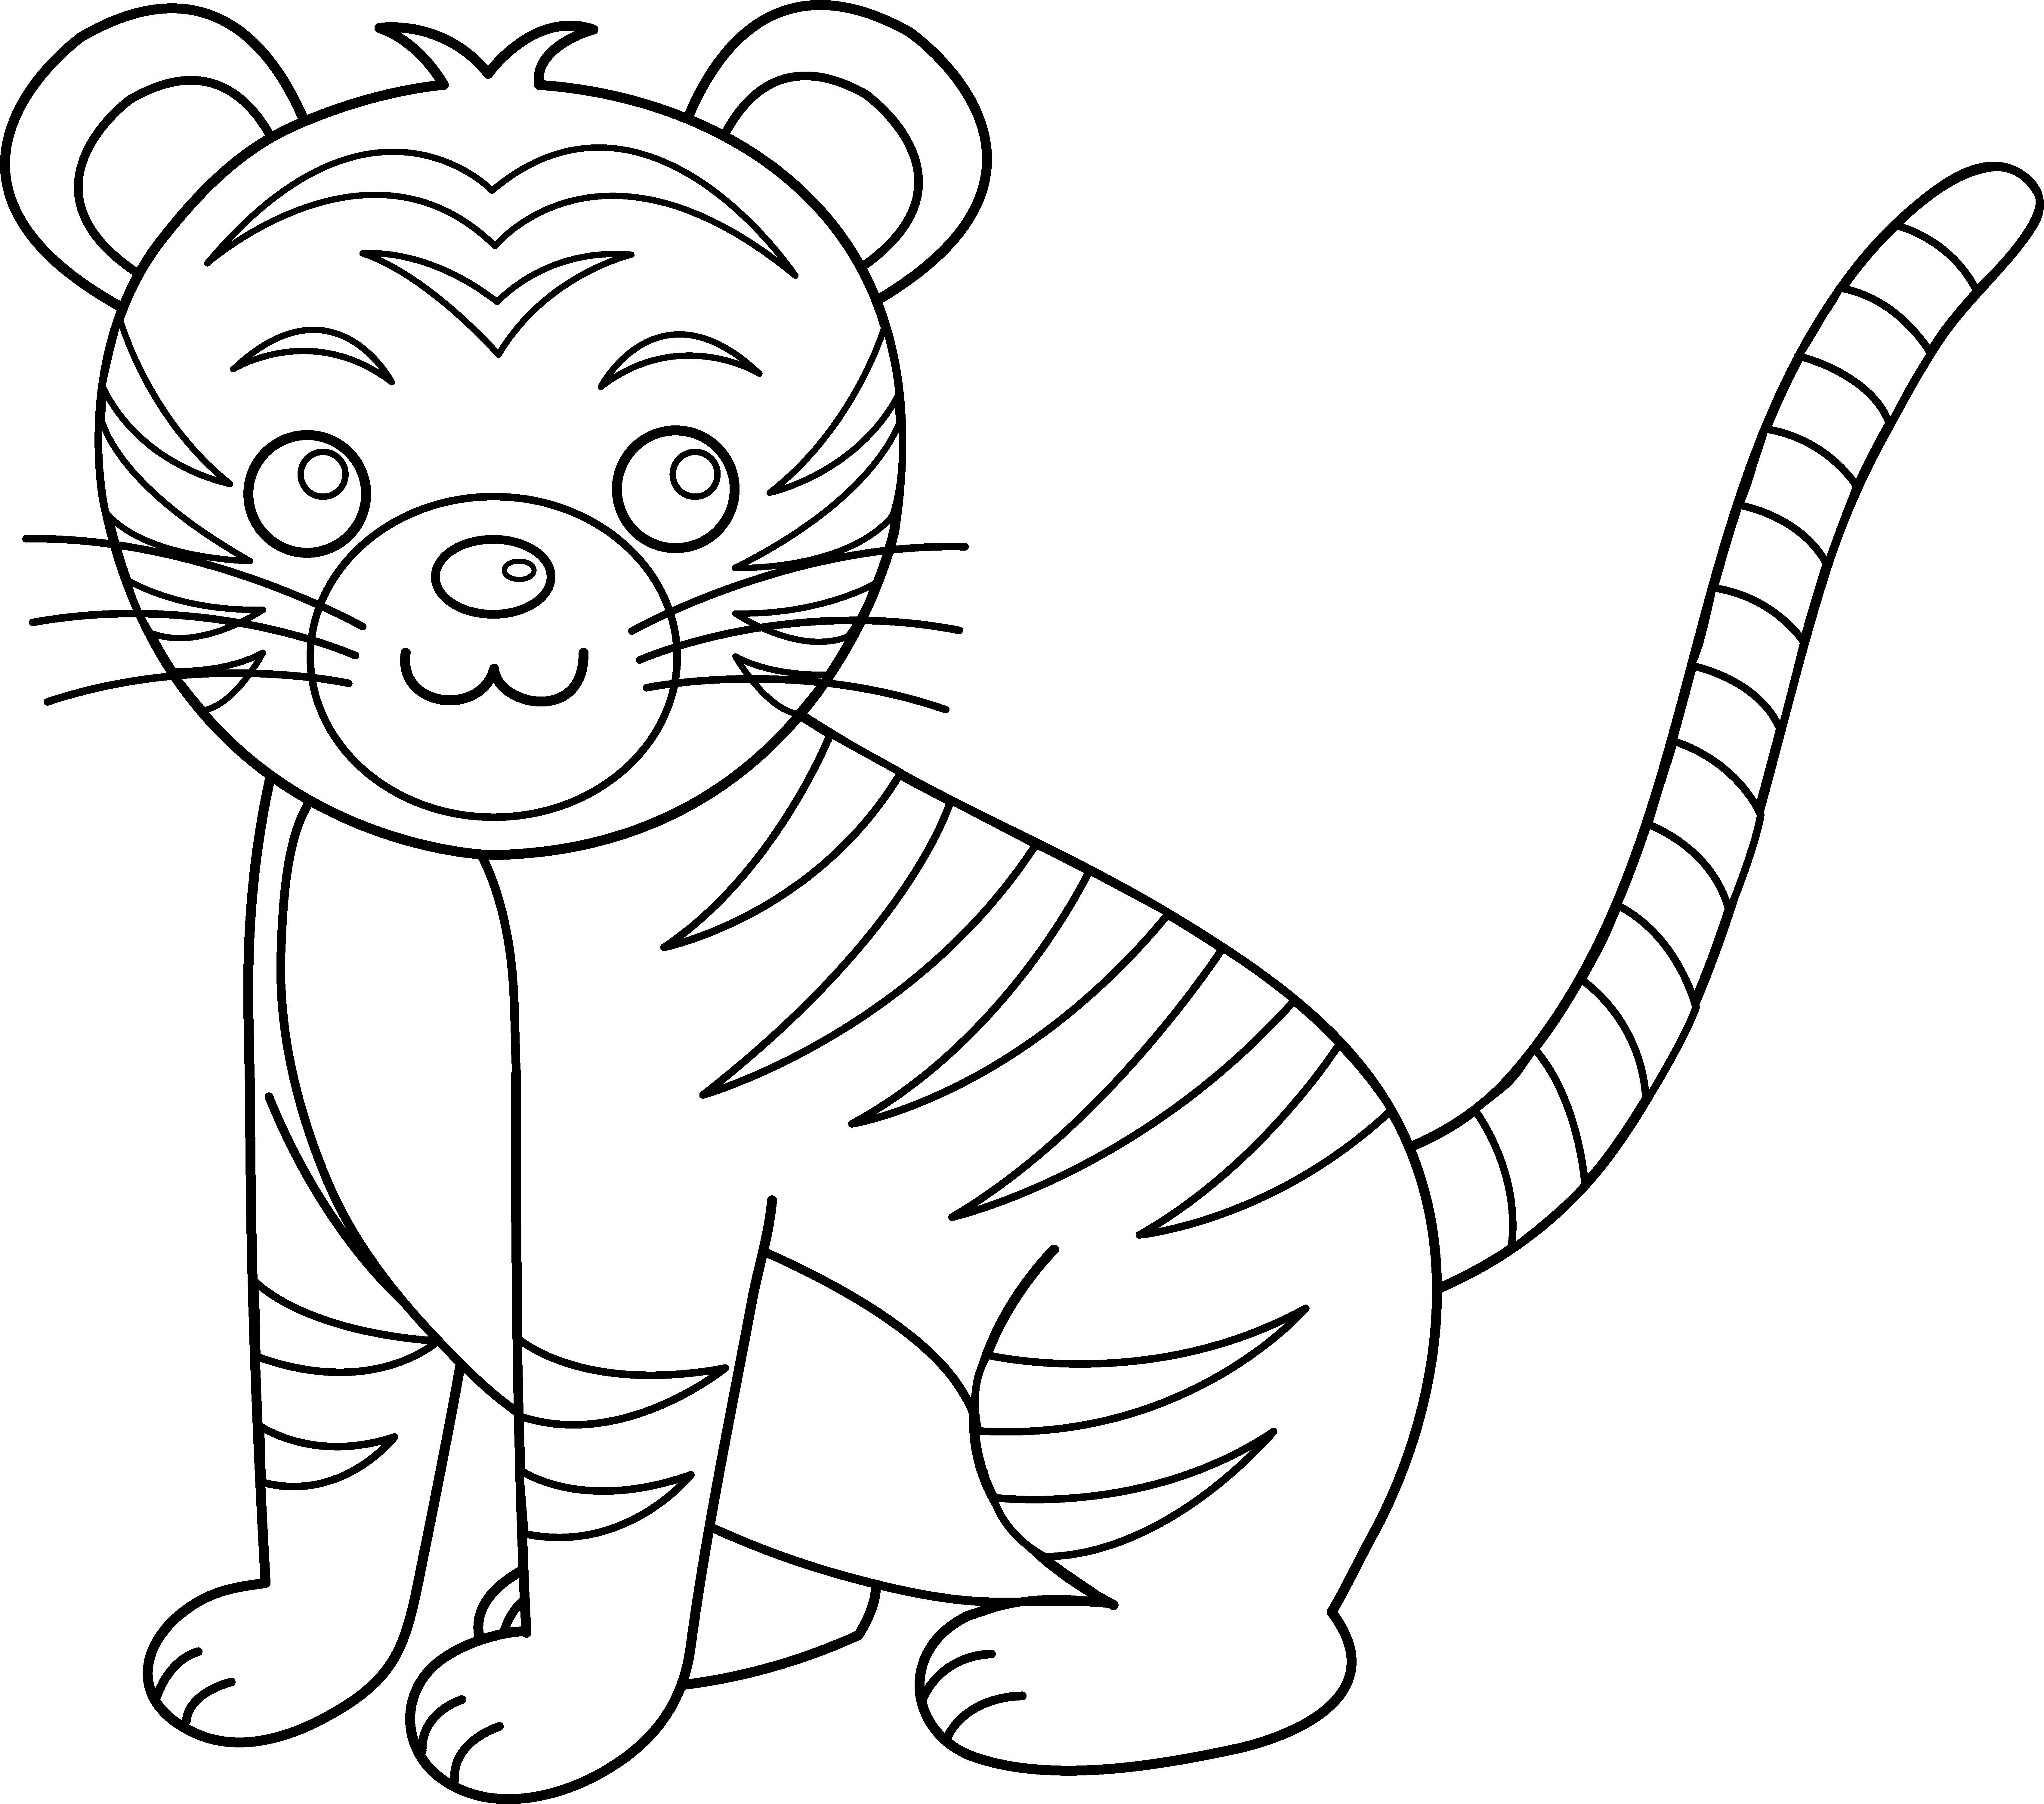 coloring pictures of tigers free printable tiger coloring pages for kids animal place pictures coloring of tigers